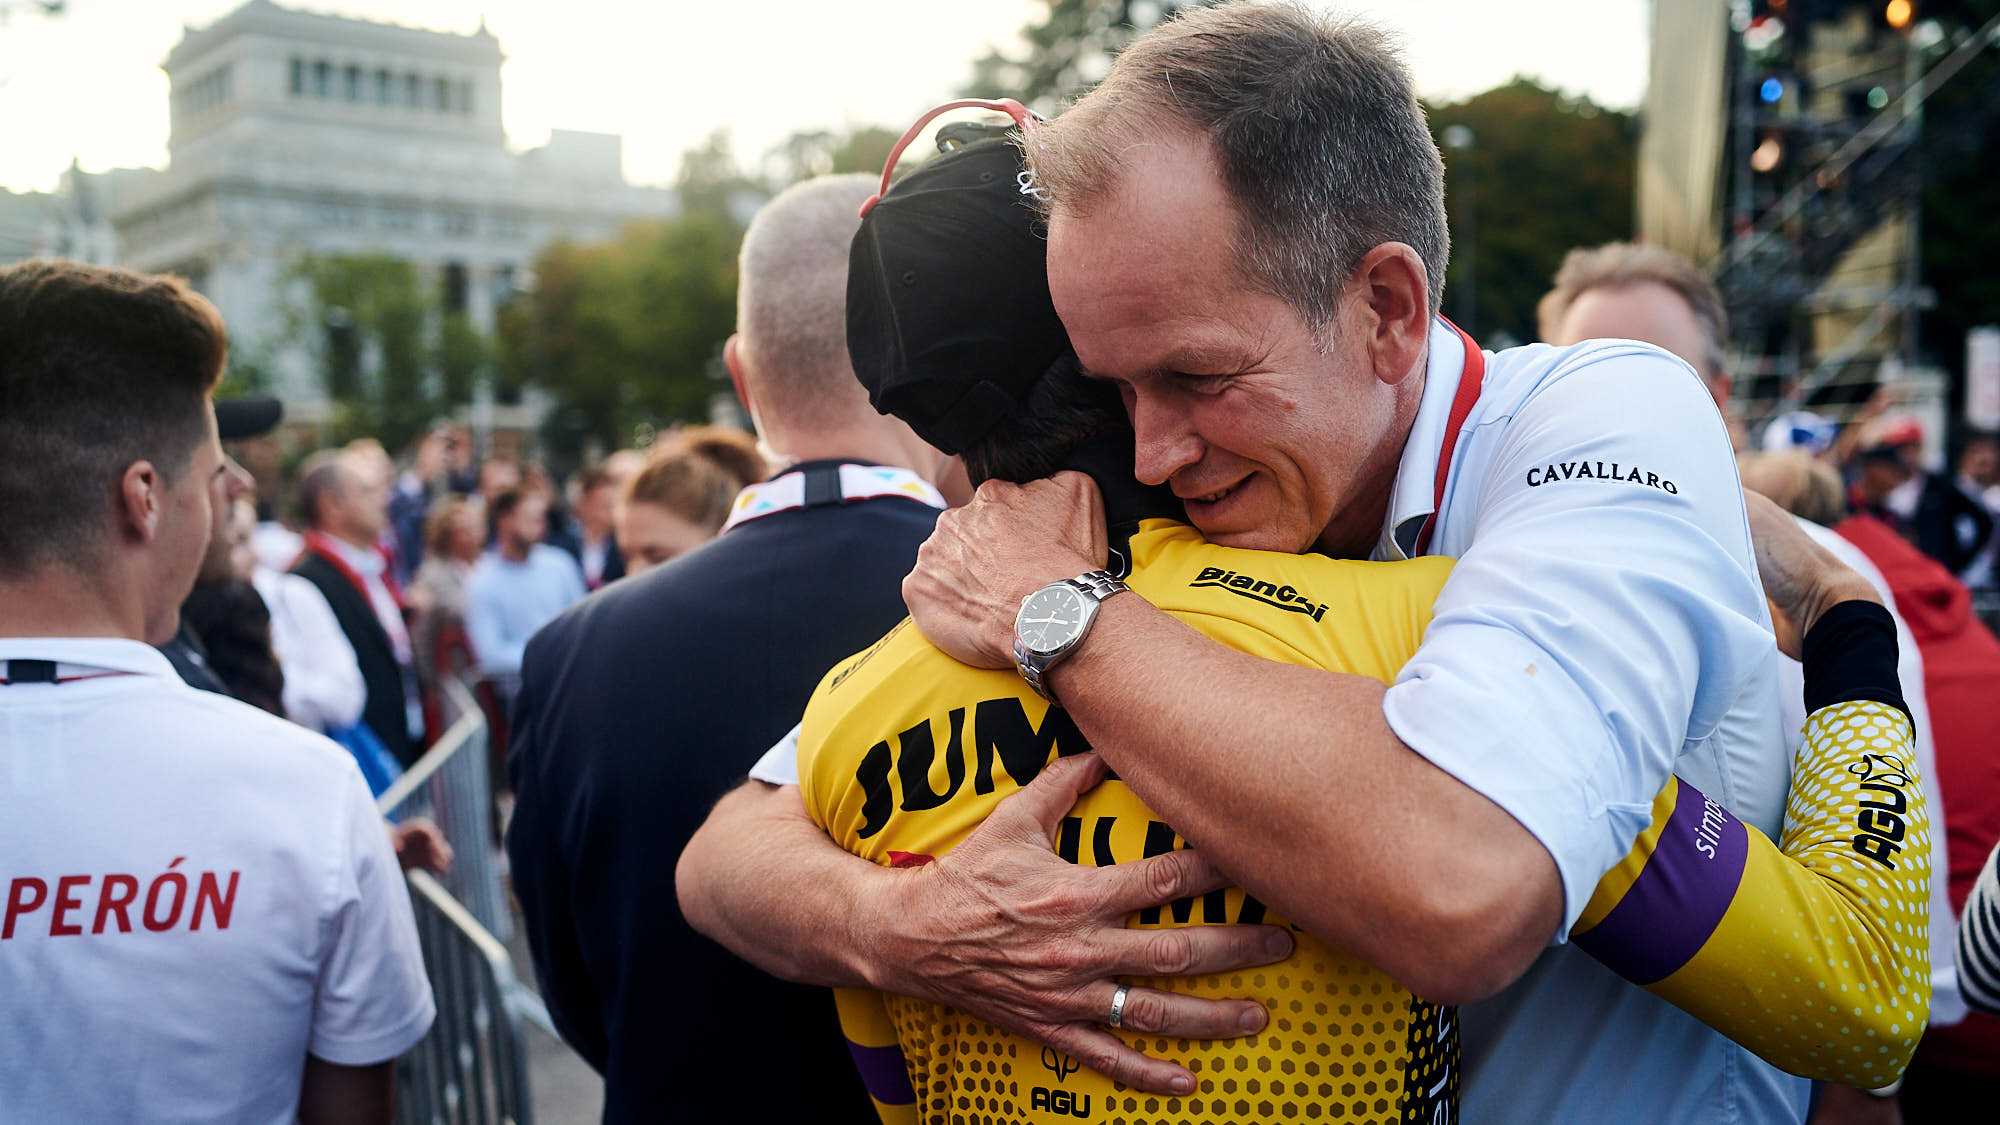 Richard Plugge embracing Primoz Roglic after he won La Vuelta in Madrid